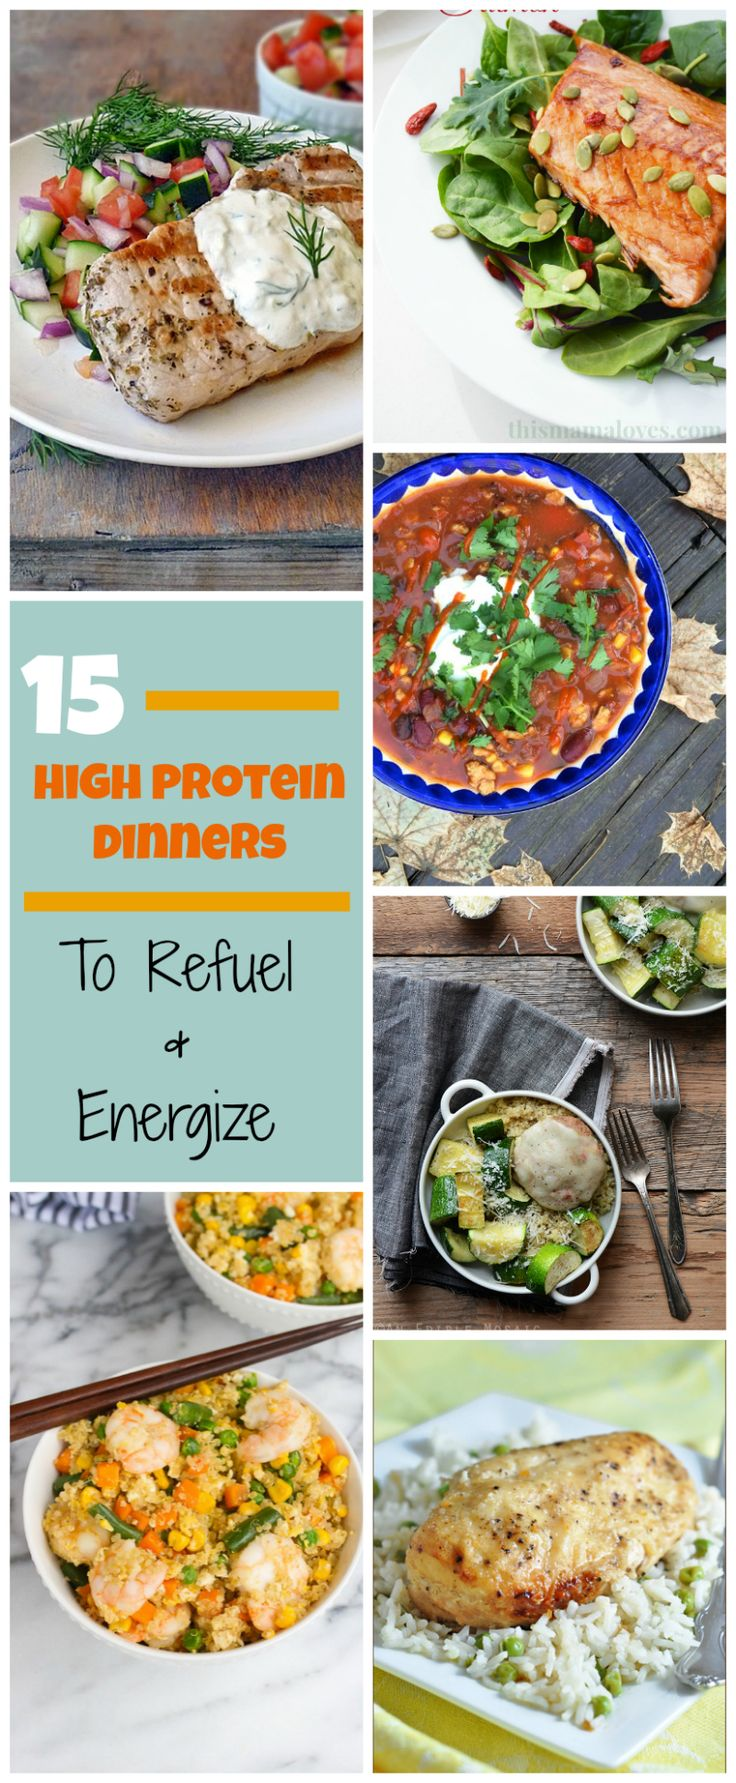 15 High Protein Dinner Recipes that are great for refueling and energizing after an intense workout. Chicken recipes, beans, fish and many recipes that will help you get lean and stay healthy.